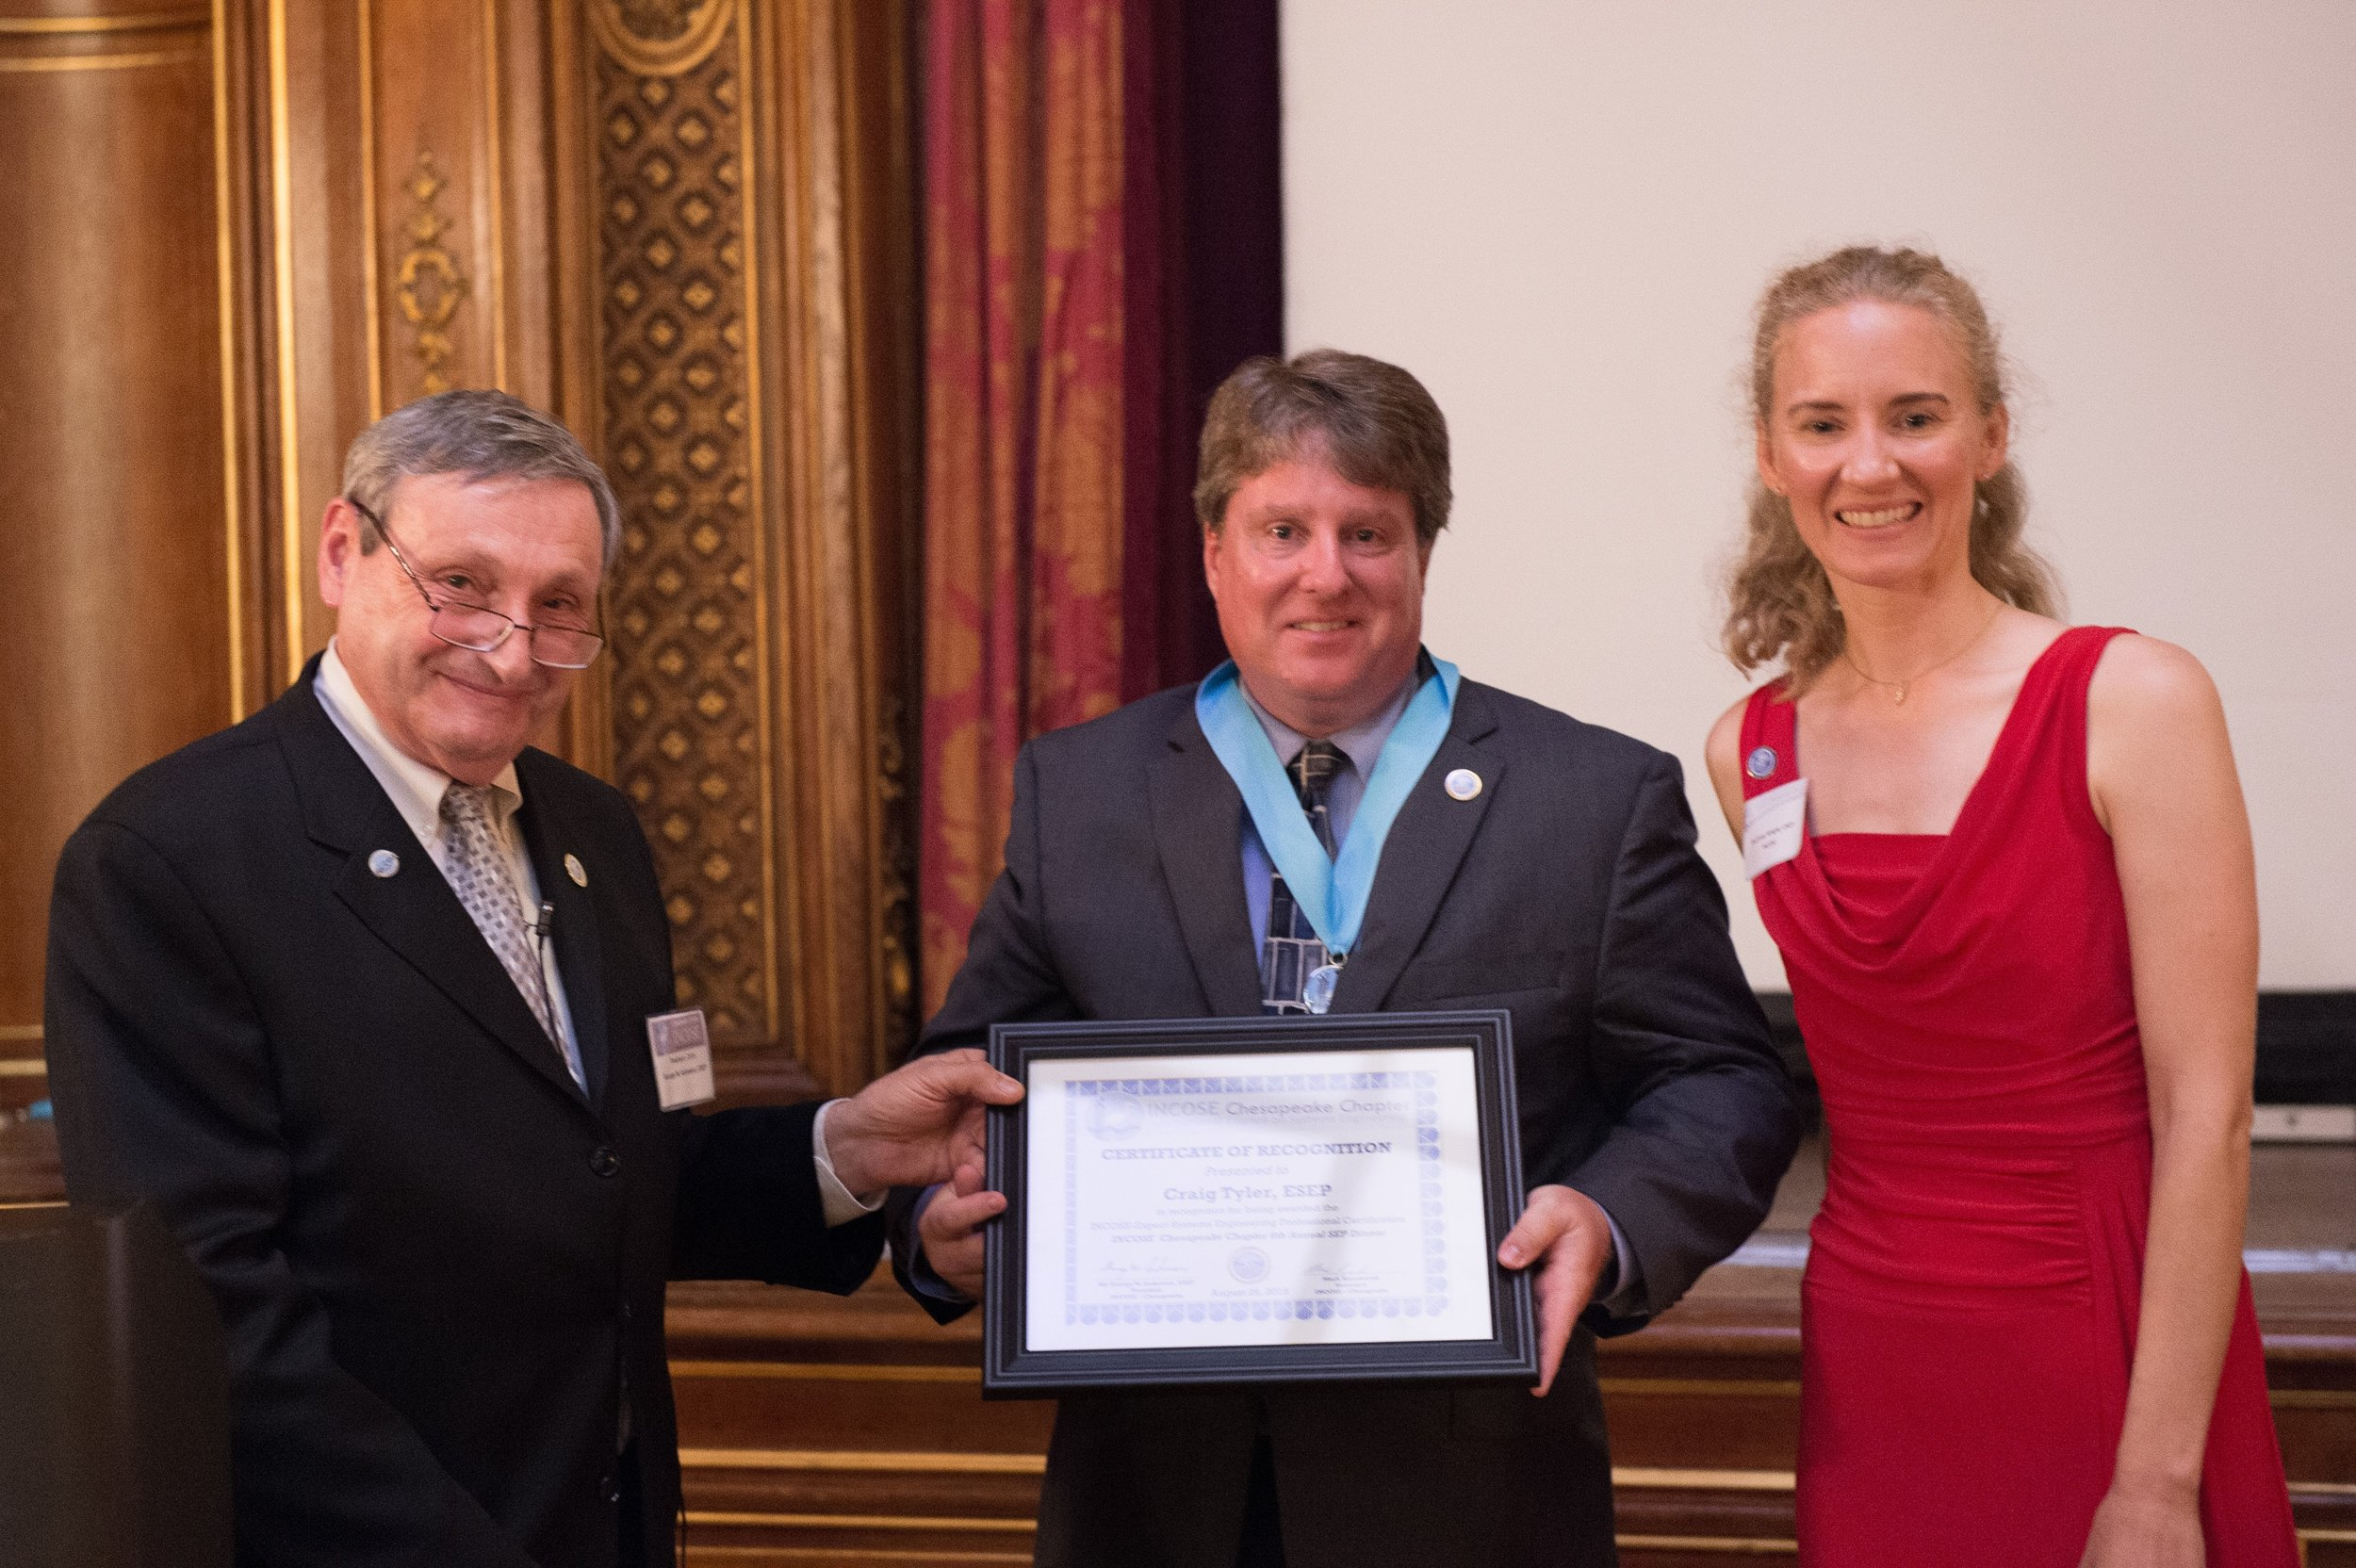 Craig Tyler receives his ESEP Recognition Certificate from George Anderson and Courtney Wright